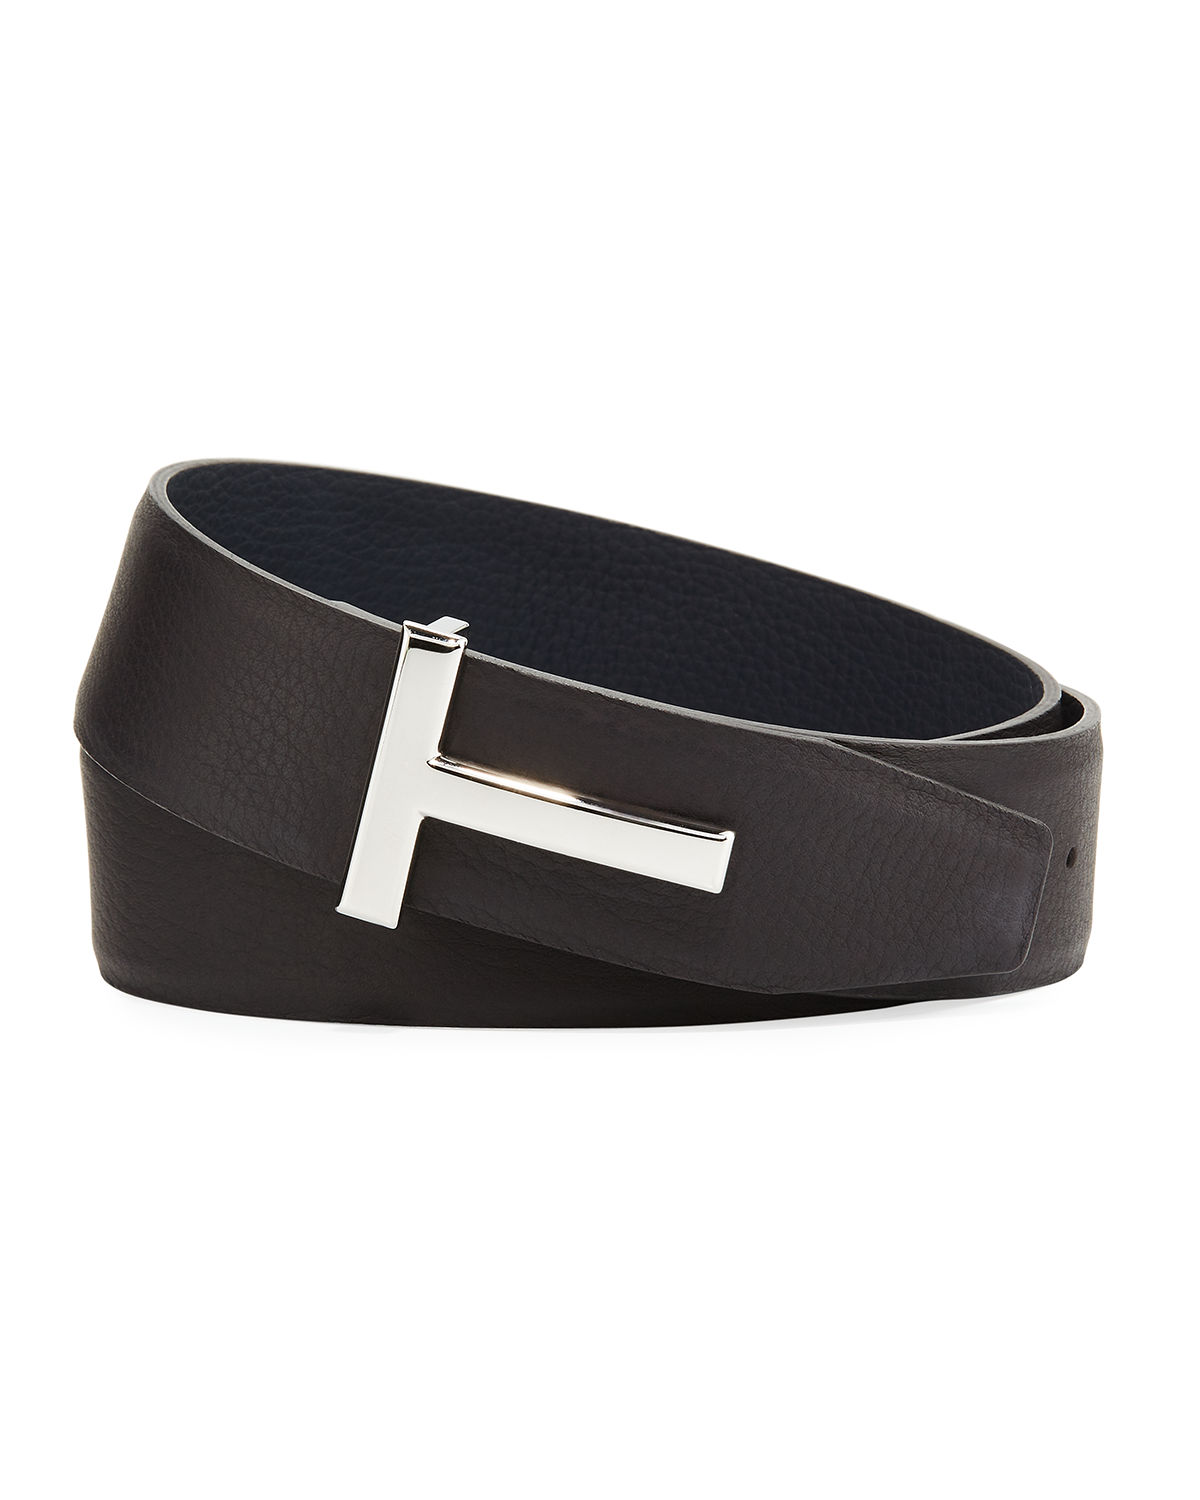 a07660bd9 TOM FORD T-Buckle Reversible Leather Belt | Neiman Marcus